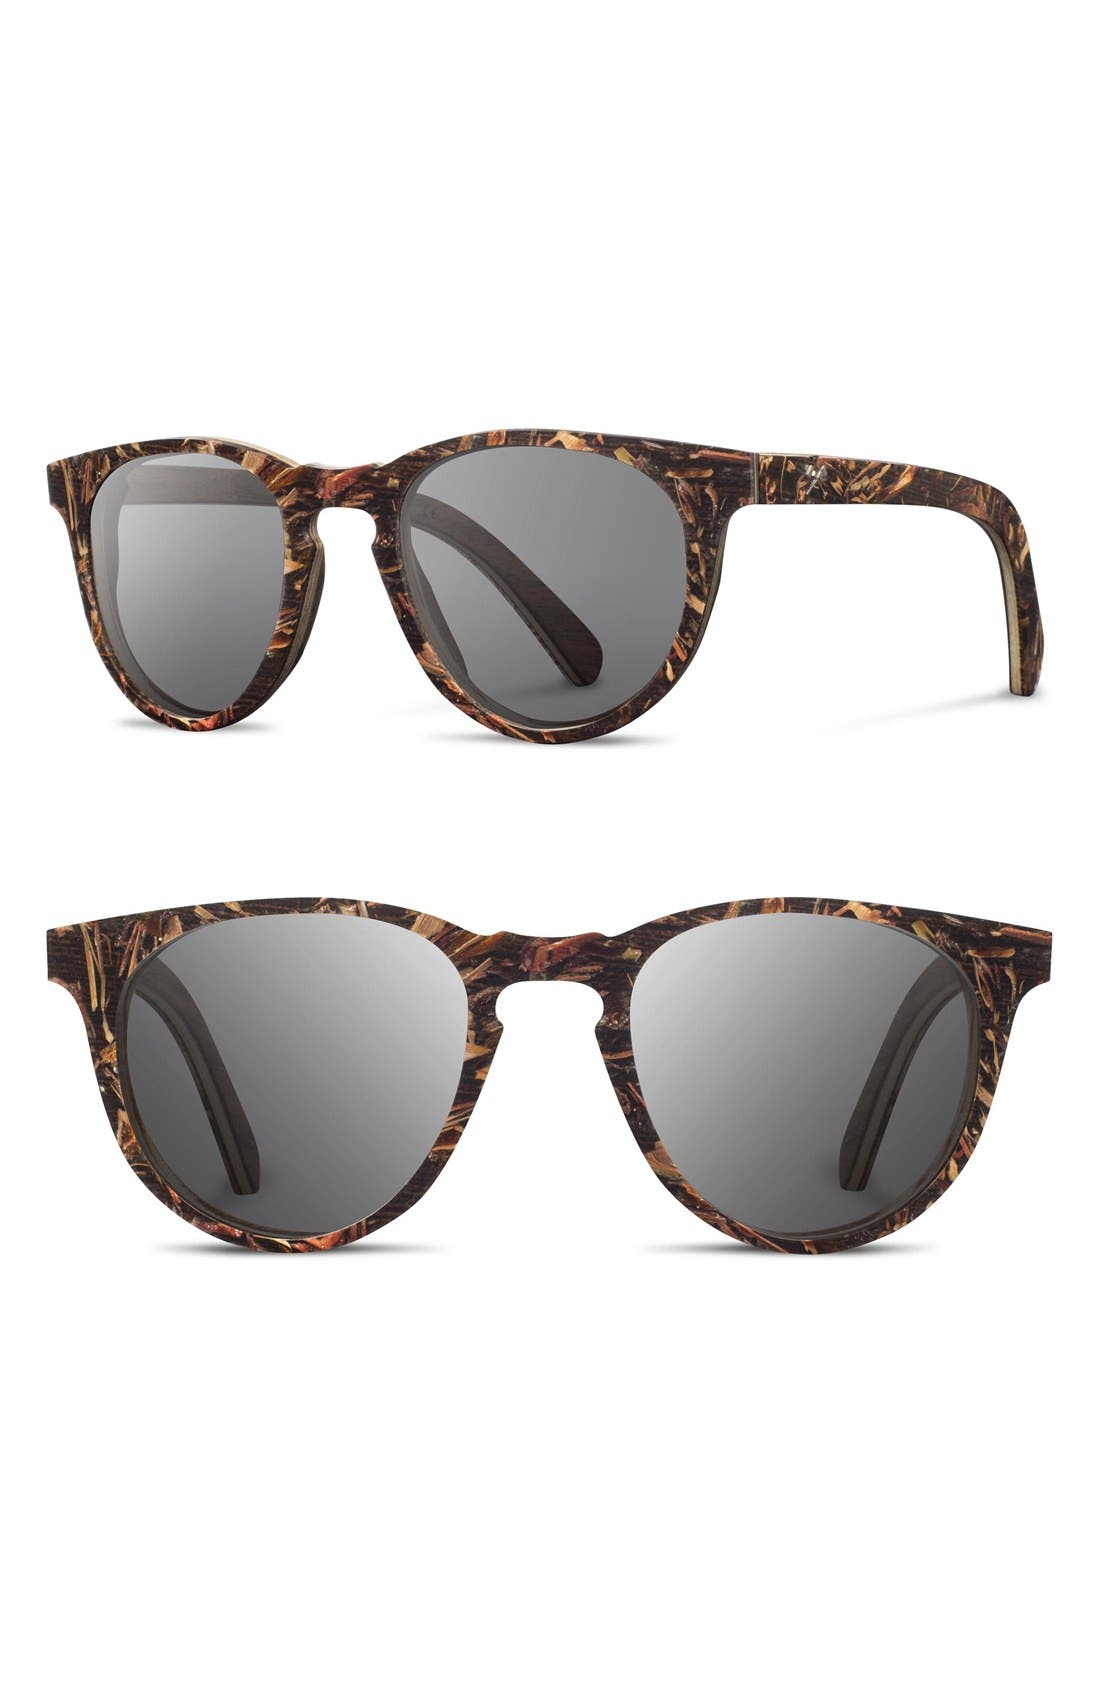 SHWOOD 'Belmont Flower' 51mm Polarized Wood Sunglasses